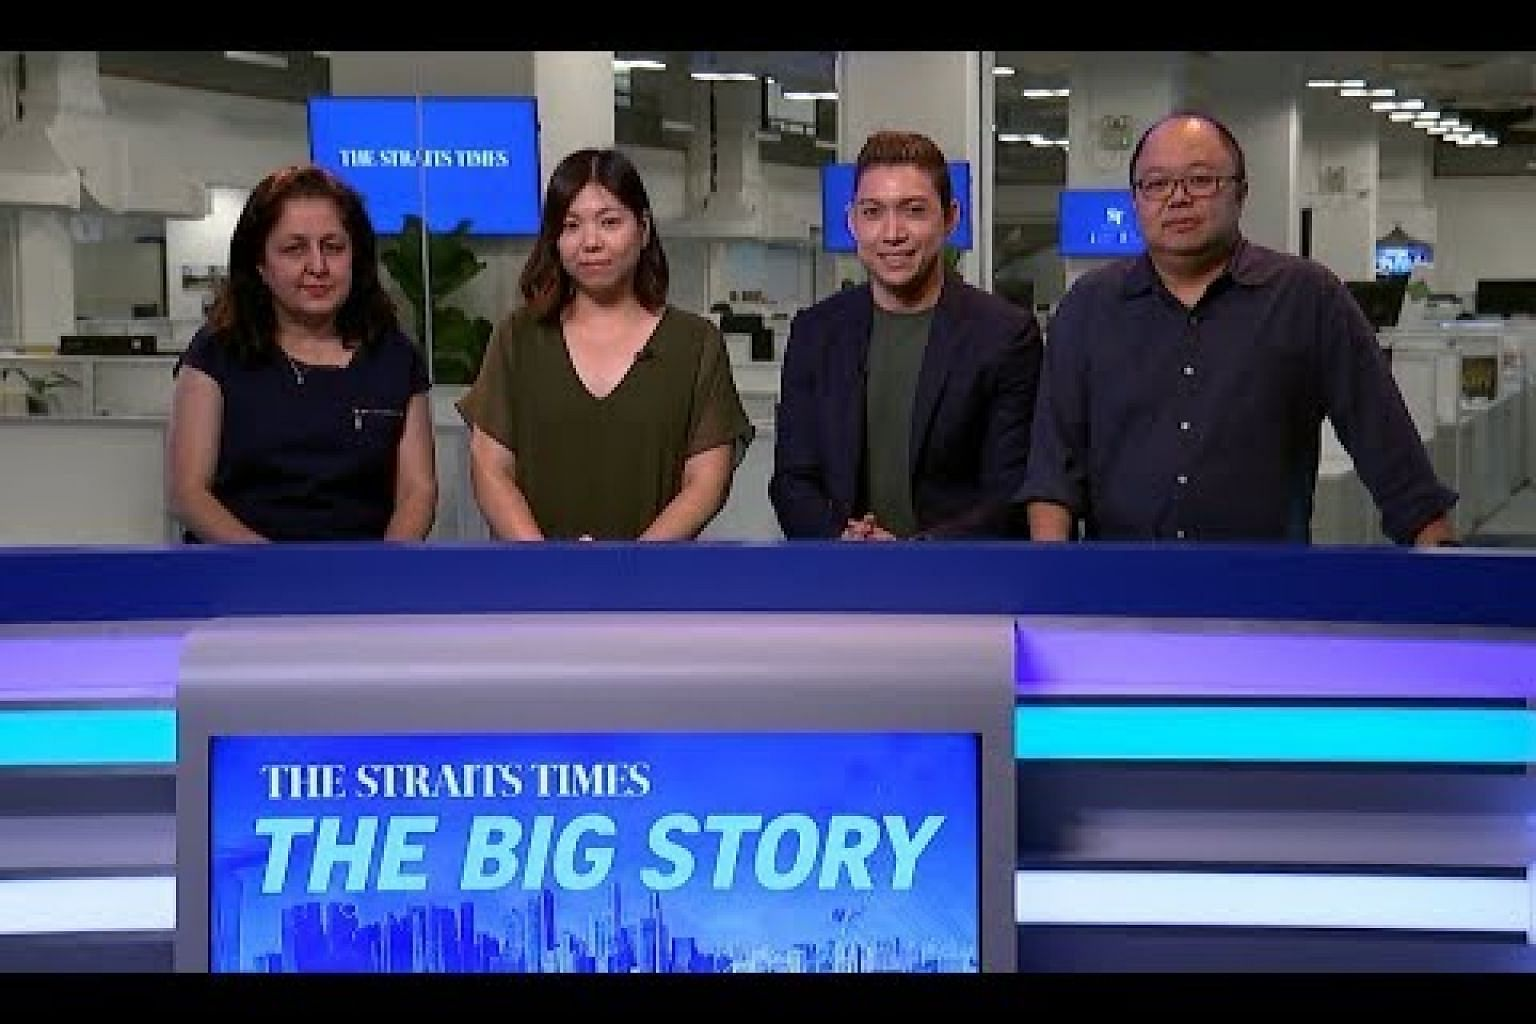 THE BIG STORY: Hong Kong's future after extradition bill withdrawn | GE 2019? Electoral boundaries c